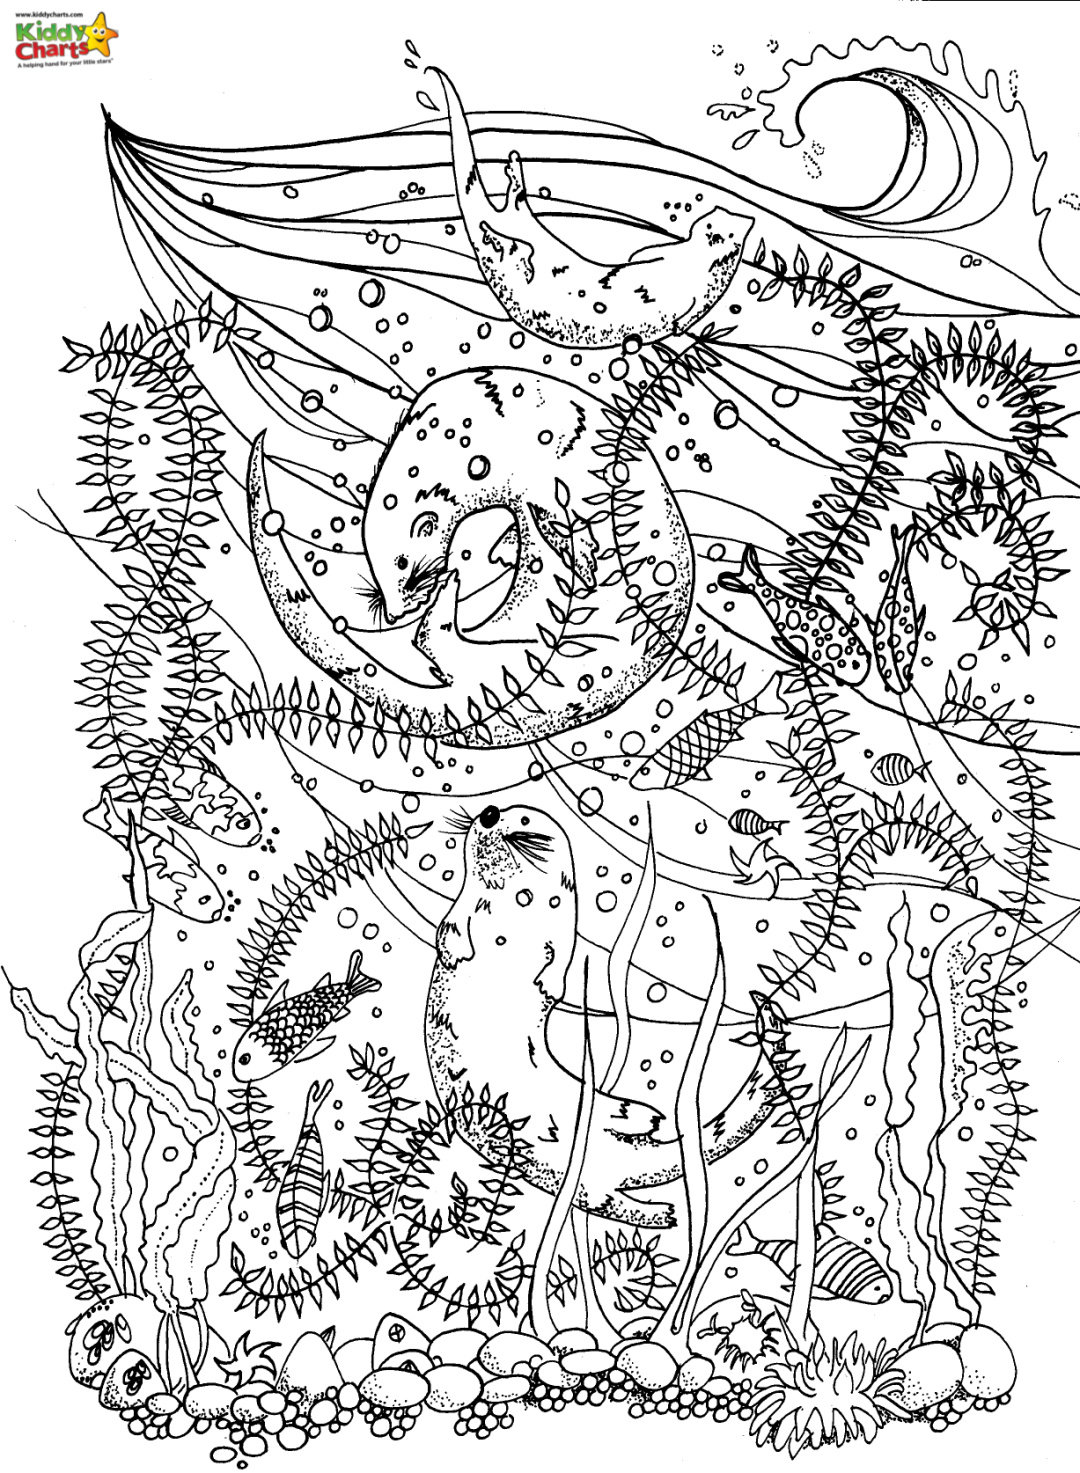 sea dragon coloring pages sea dragon coloring pages at getdrawings free download pages coloring sea dragon